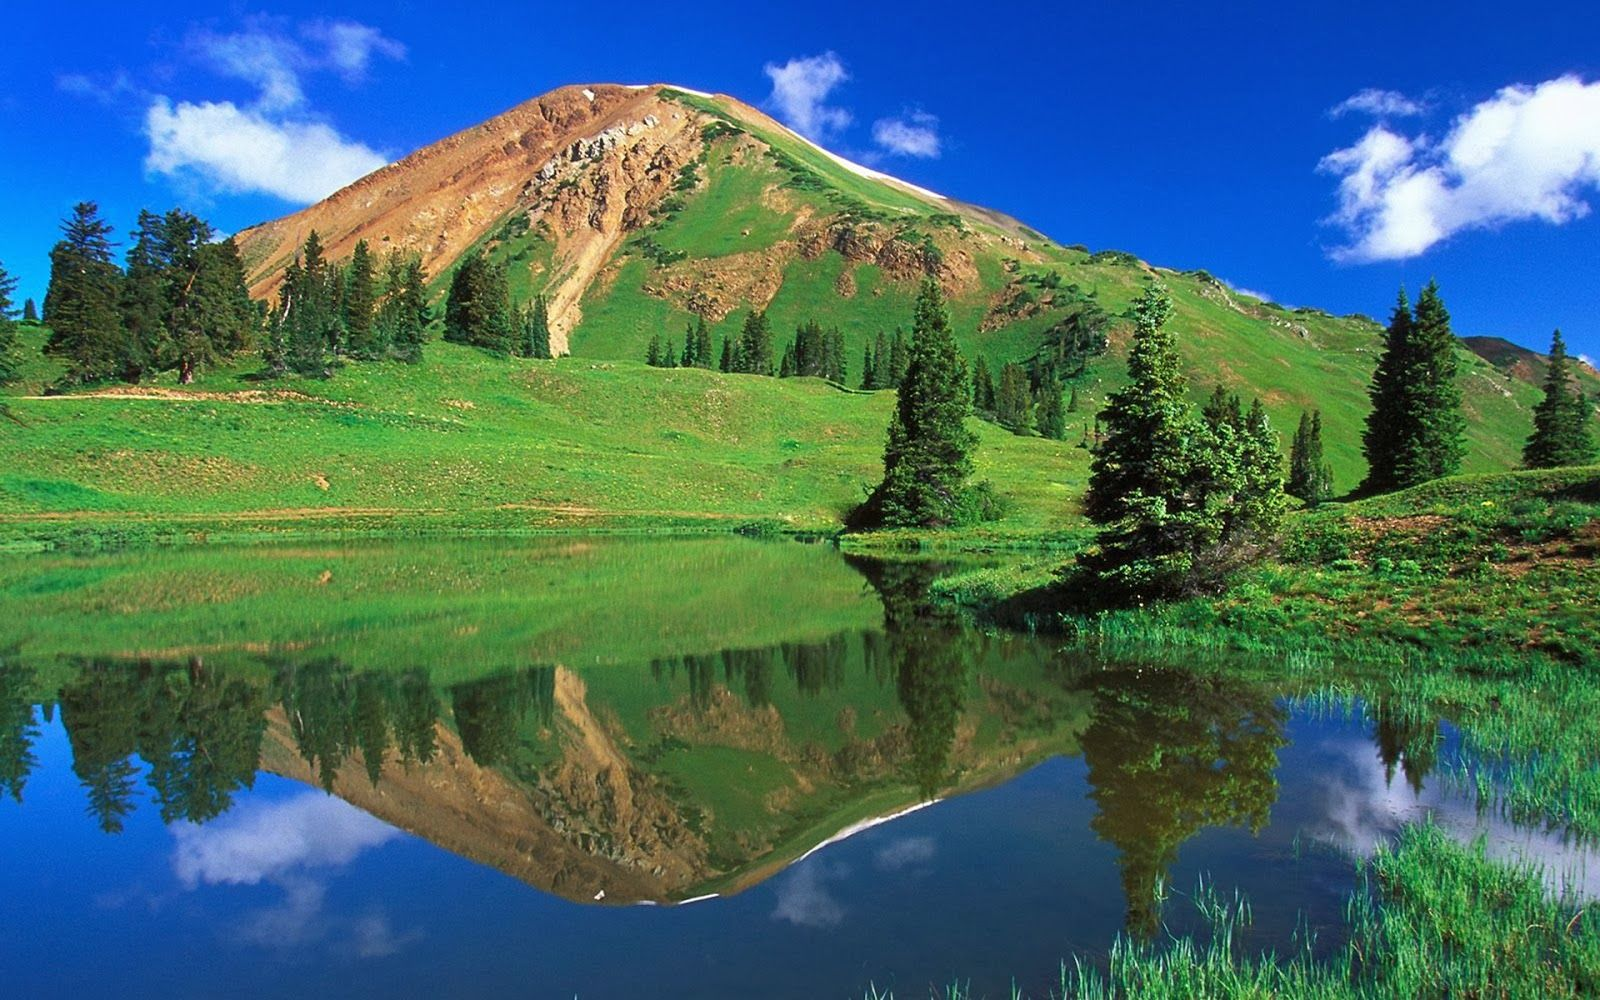 Most Beautiful Green Natural Places Desktop Background Image Best Nature Wallpapers Nature Scenery